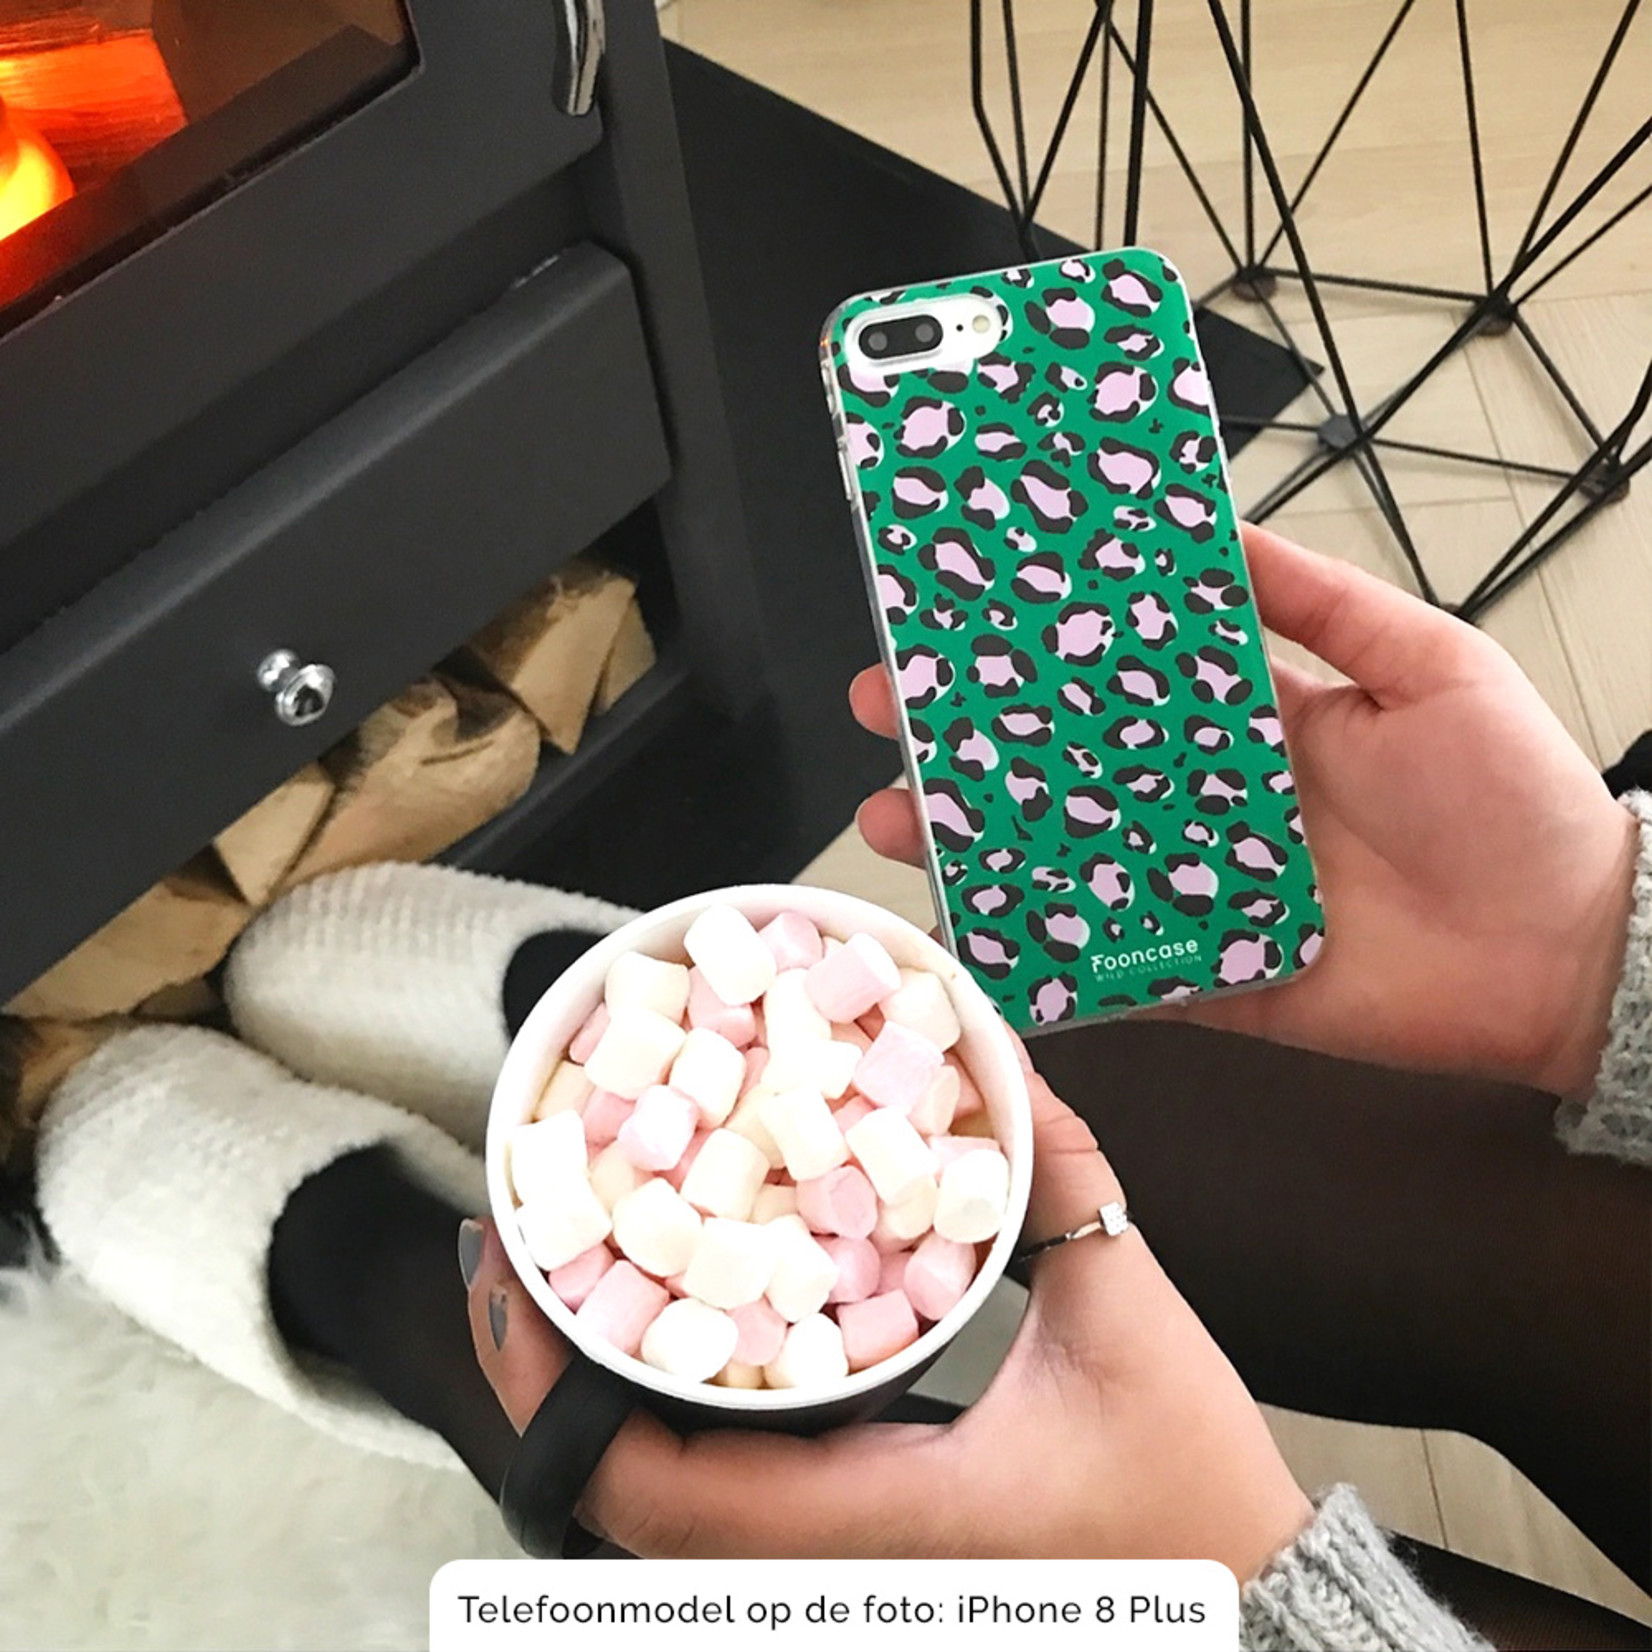 FOONCASE Samsung Galaxy S9 hoesje TPU Soft Case - Back Cover - WILD COLLECTION / Luipaard / Leopard print / Groen